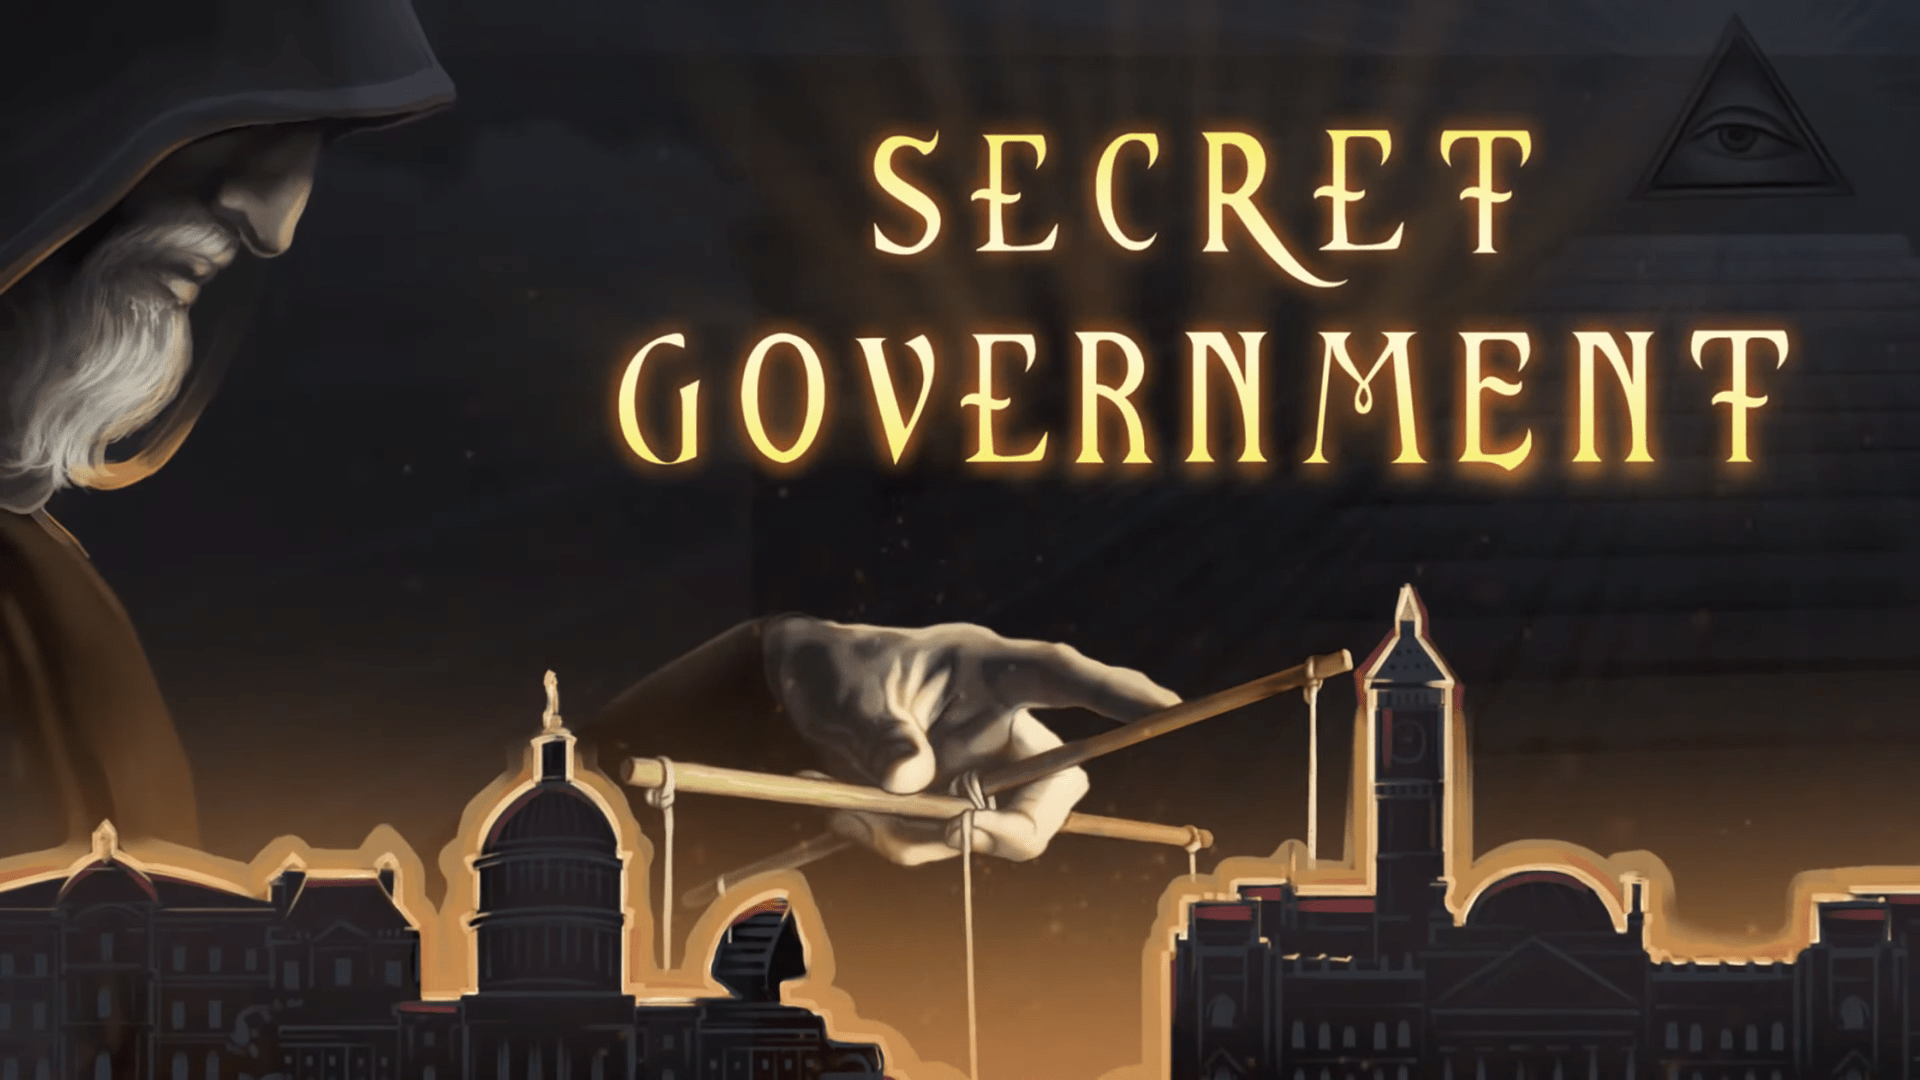 Lead A Secret Society And Take Over The World In New Grand Strategy Game Secret Government